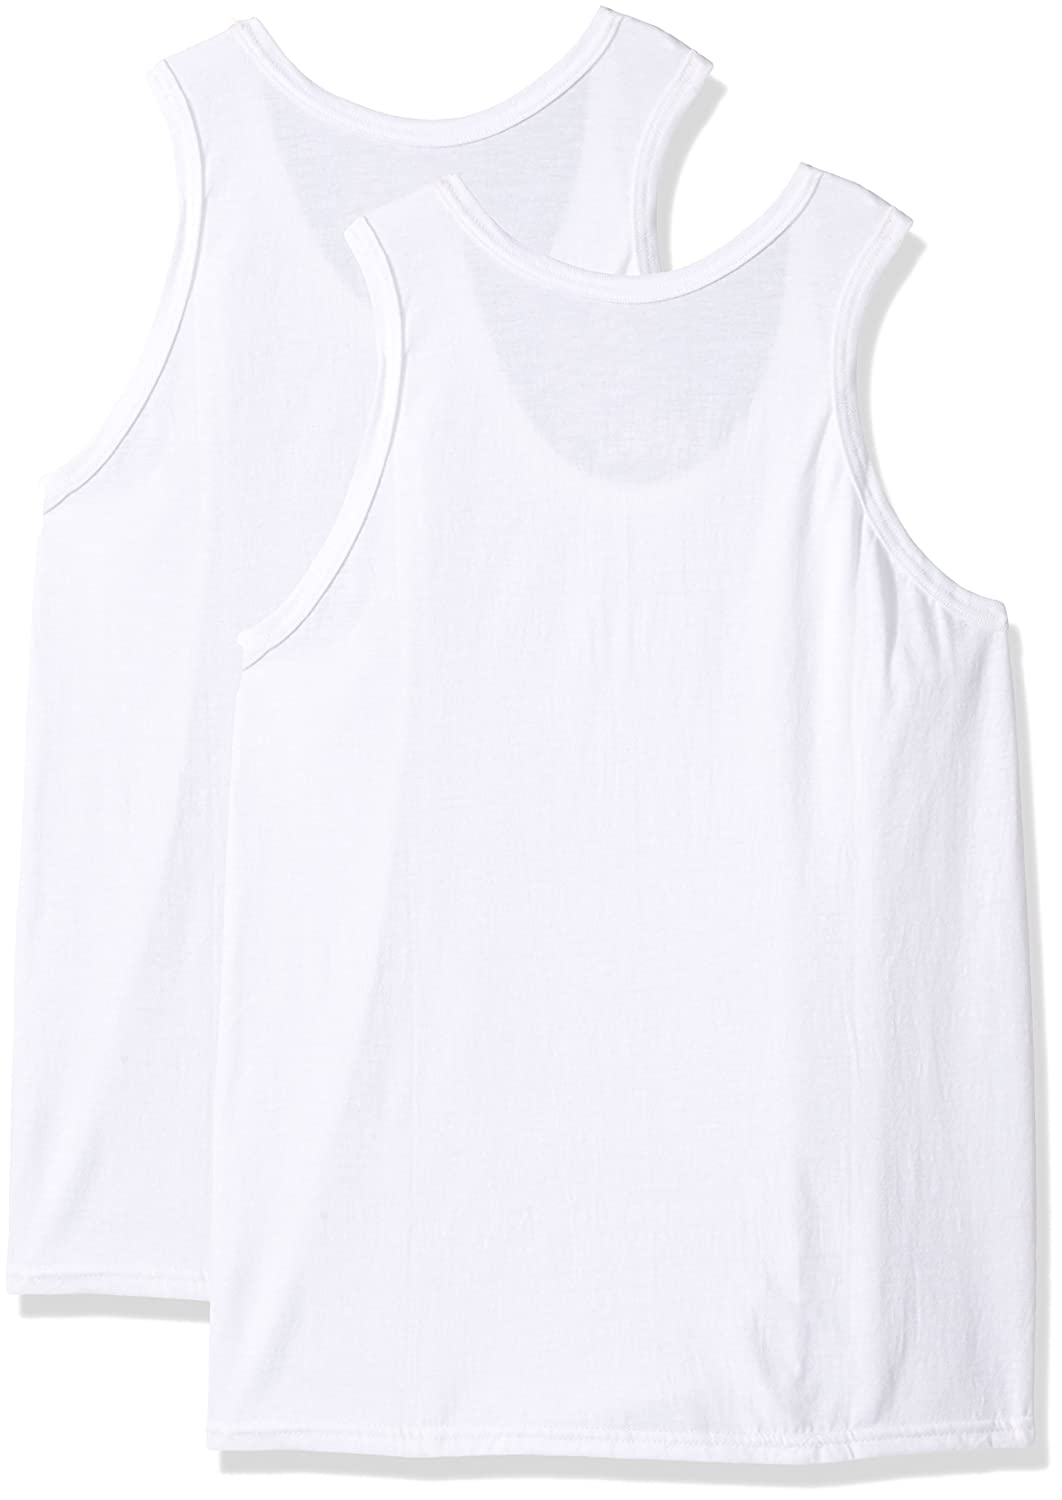 cb2112b7b3506b Hanes Men s X-Temp Tank Top 2 Pack Hanes Branded Printwear O42MT larger  image